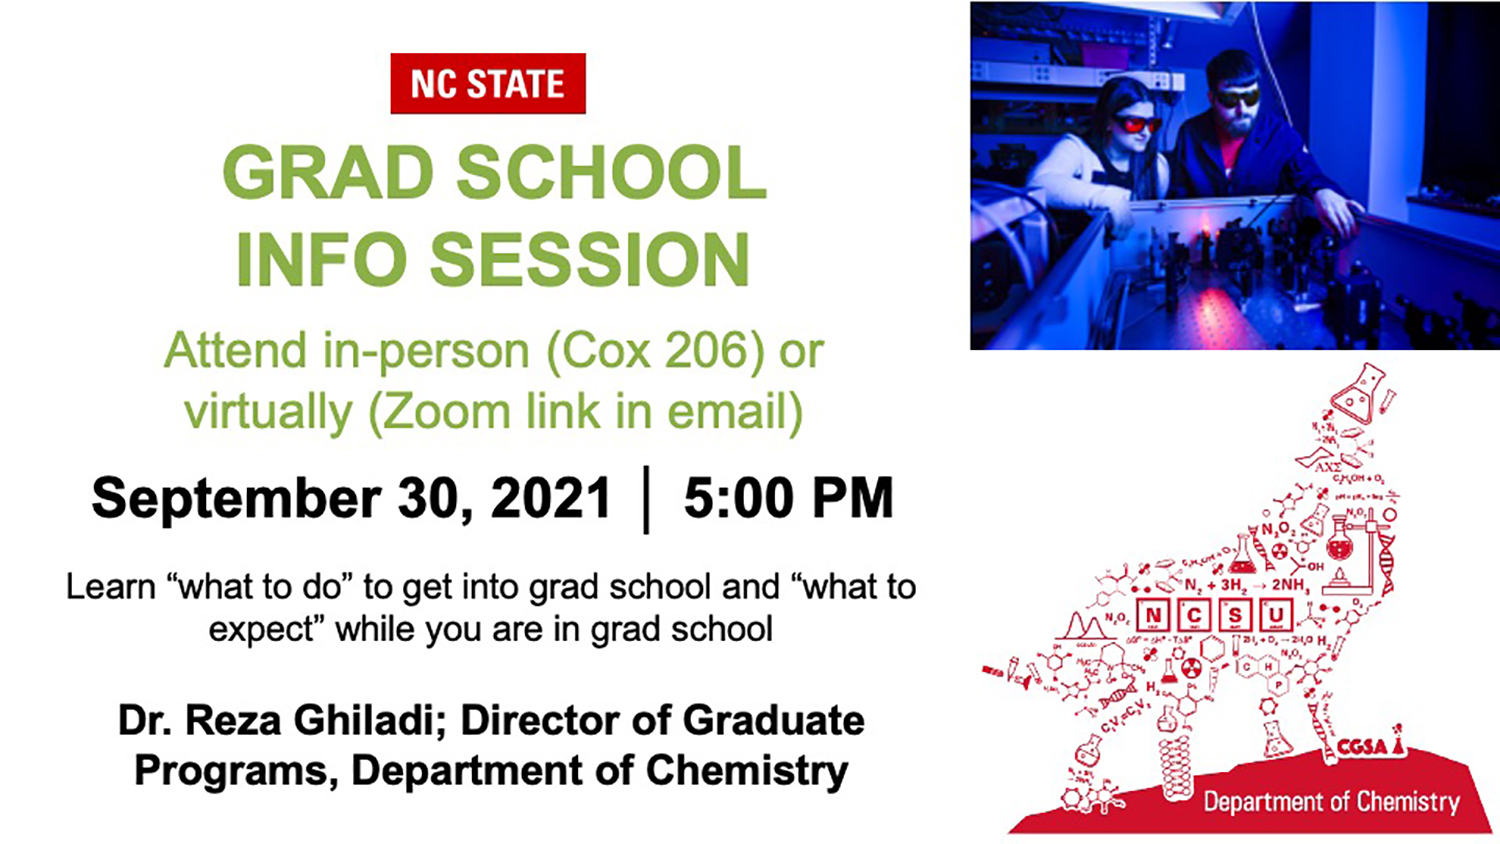 Graduate School in Chemistry Info Session Flyer includes location, date, time, and name and title of speaker